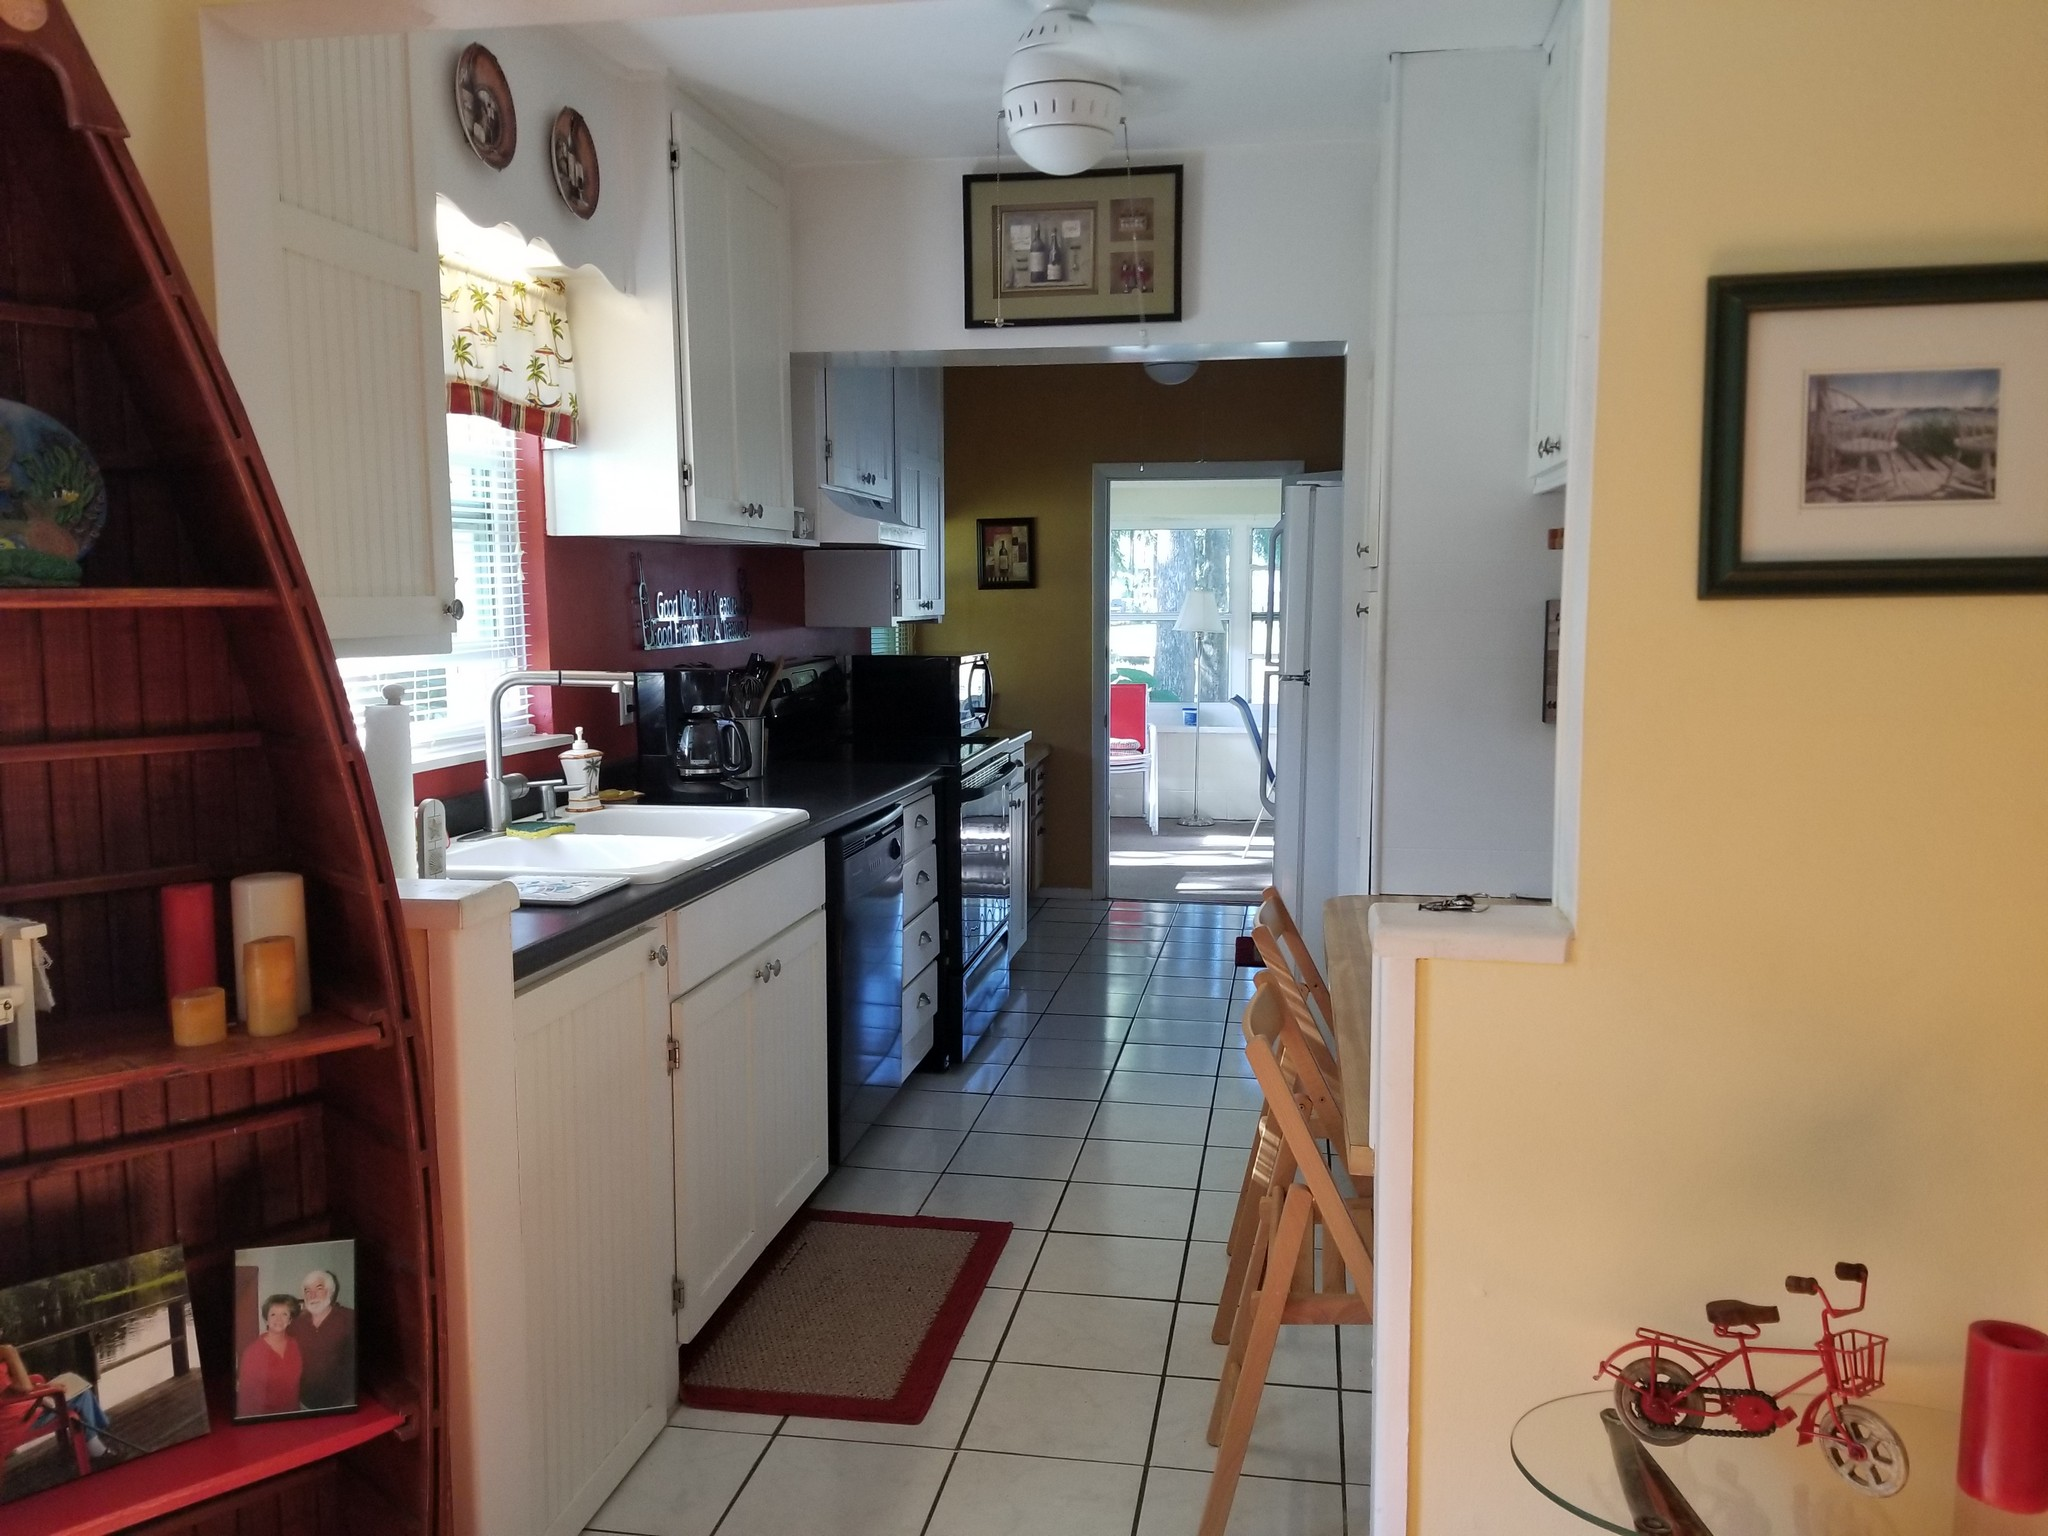 photo of kitchen with tiled floors, white cupboards, and a canoe-shaped shelf just outside the kitchen